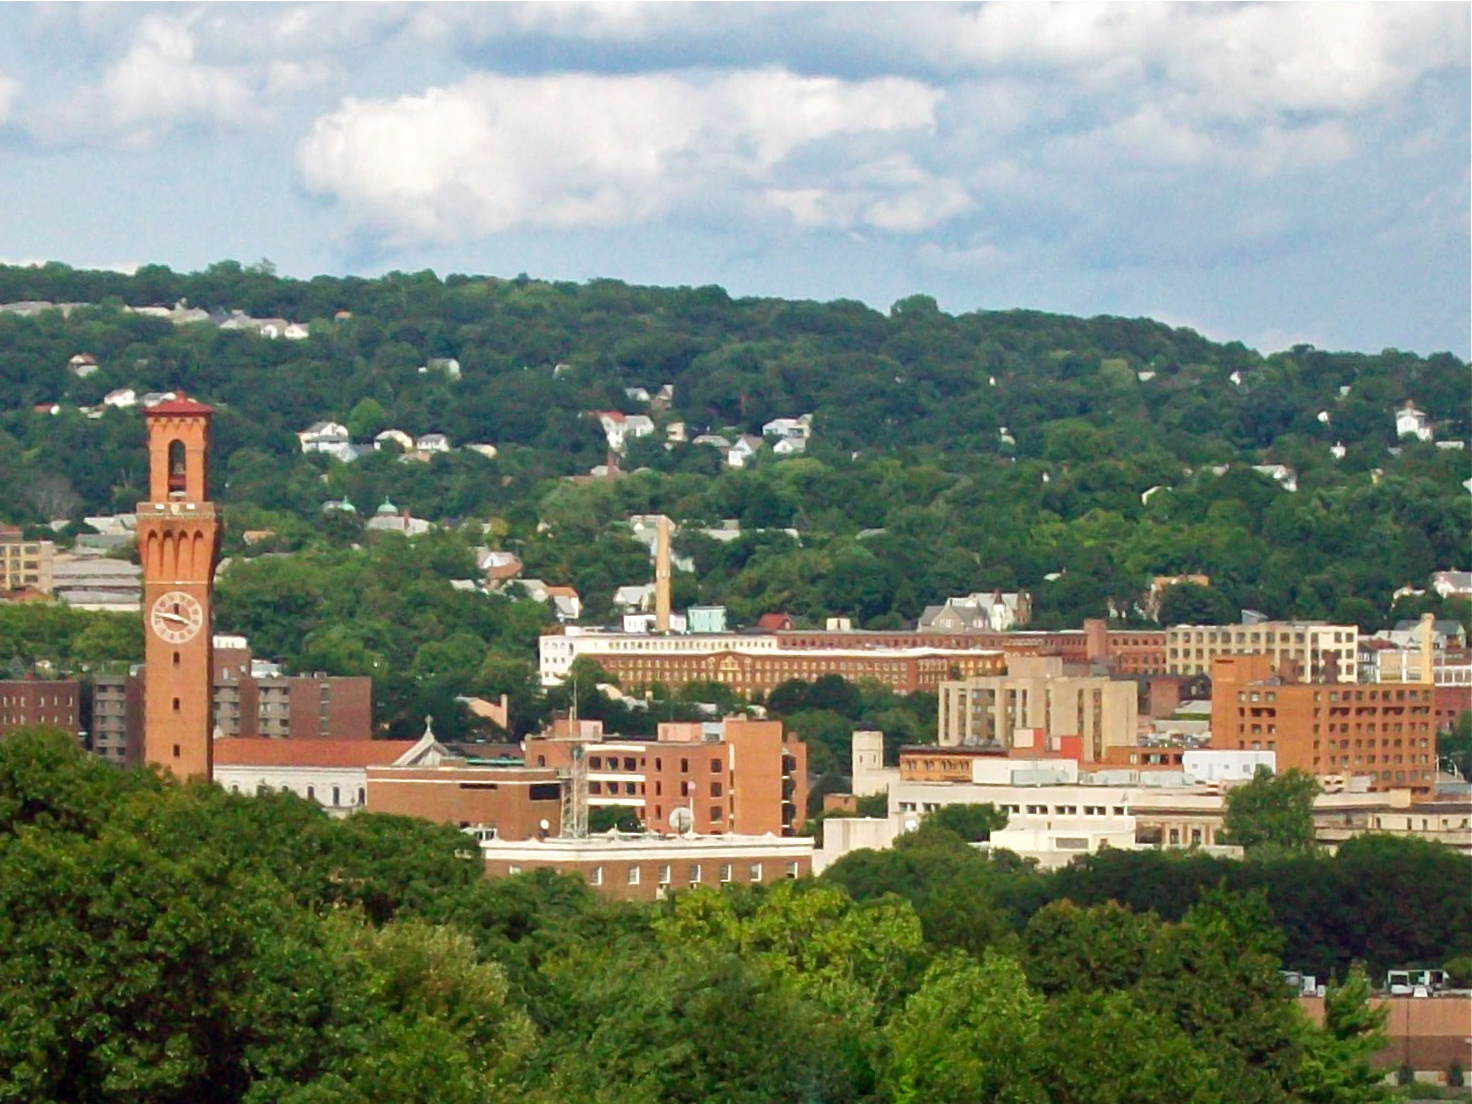 """""""Western approach to Waterbury, CT"""" by Daniel Case (licensed under CC BY 2.0)"""